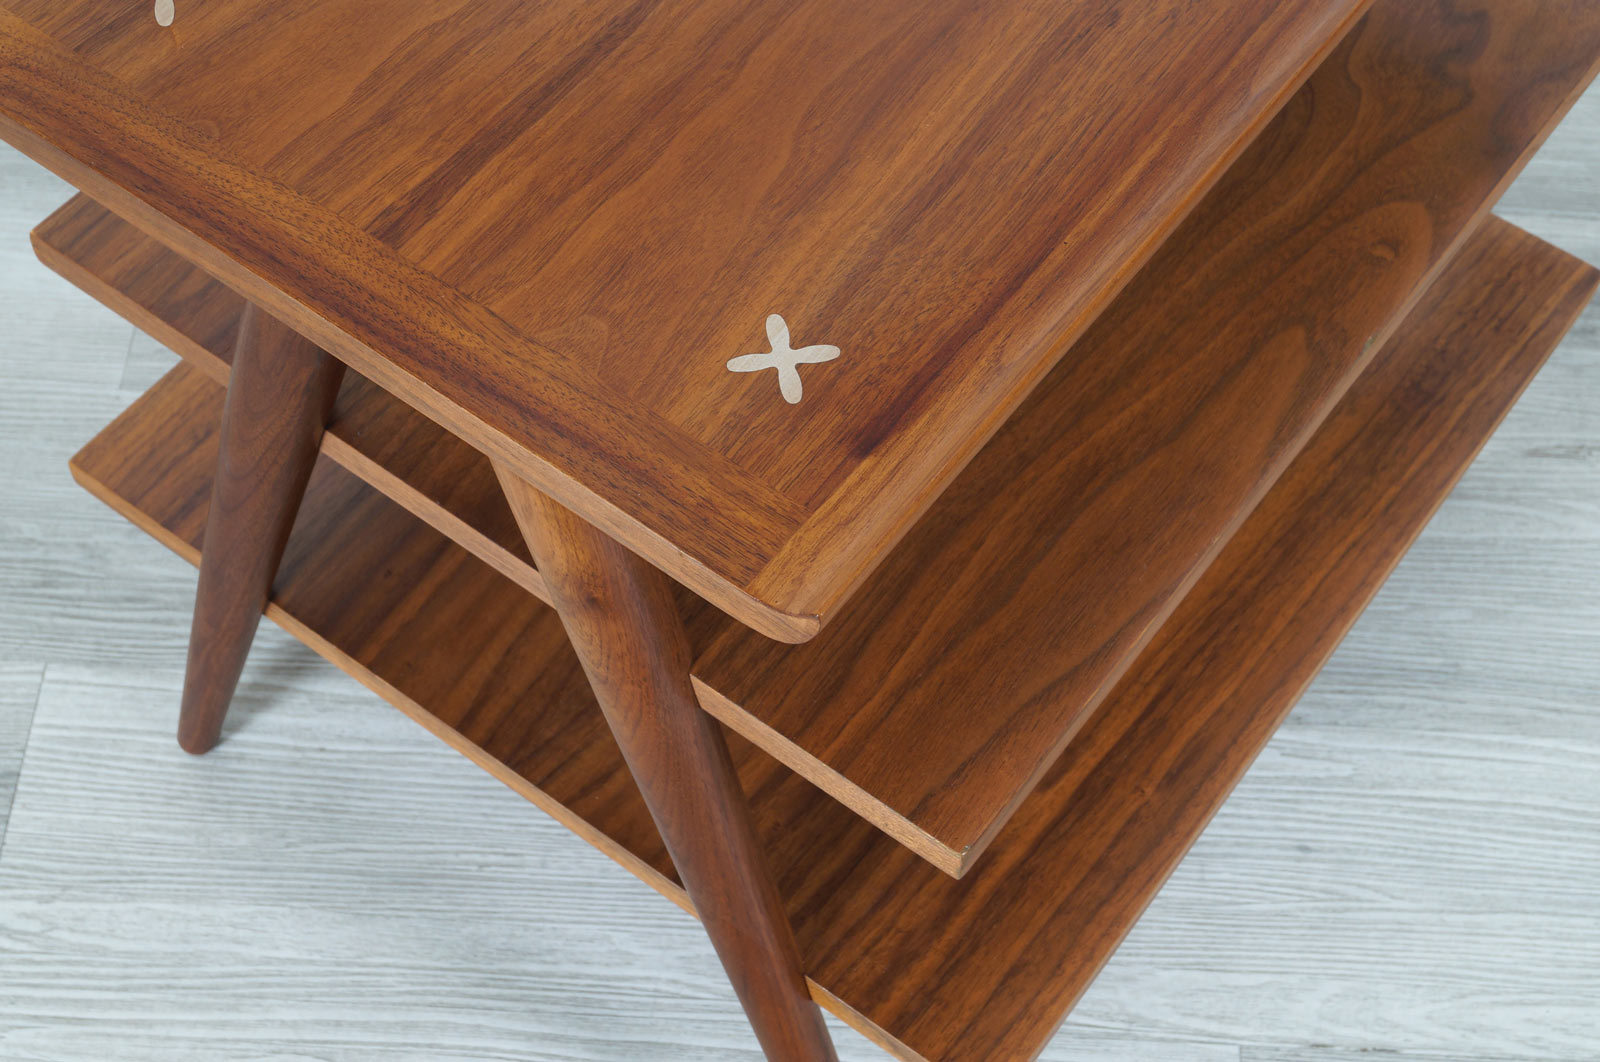 Vintage Three-Tiered Walnut Tables by Merton L. Gershun for American of Martinsville